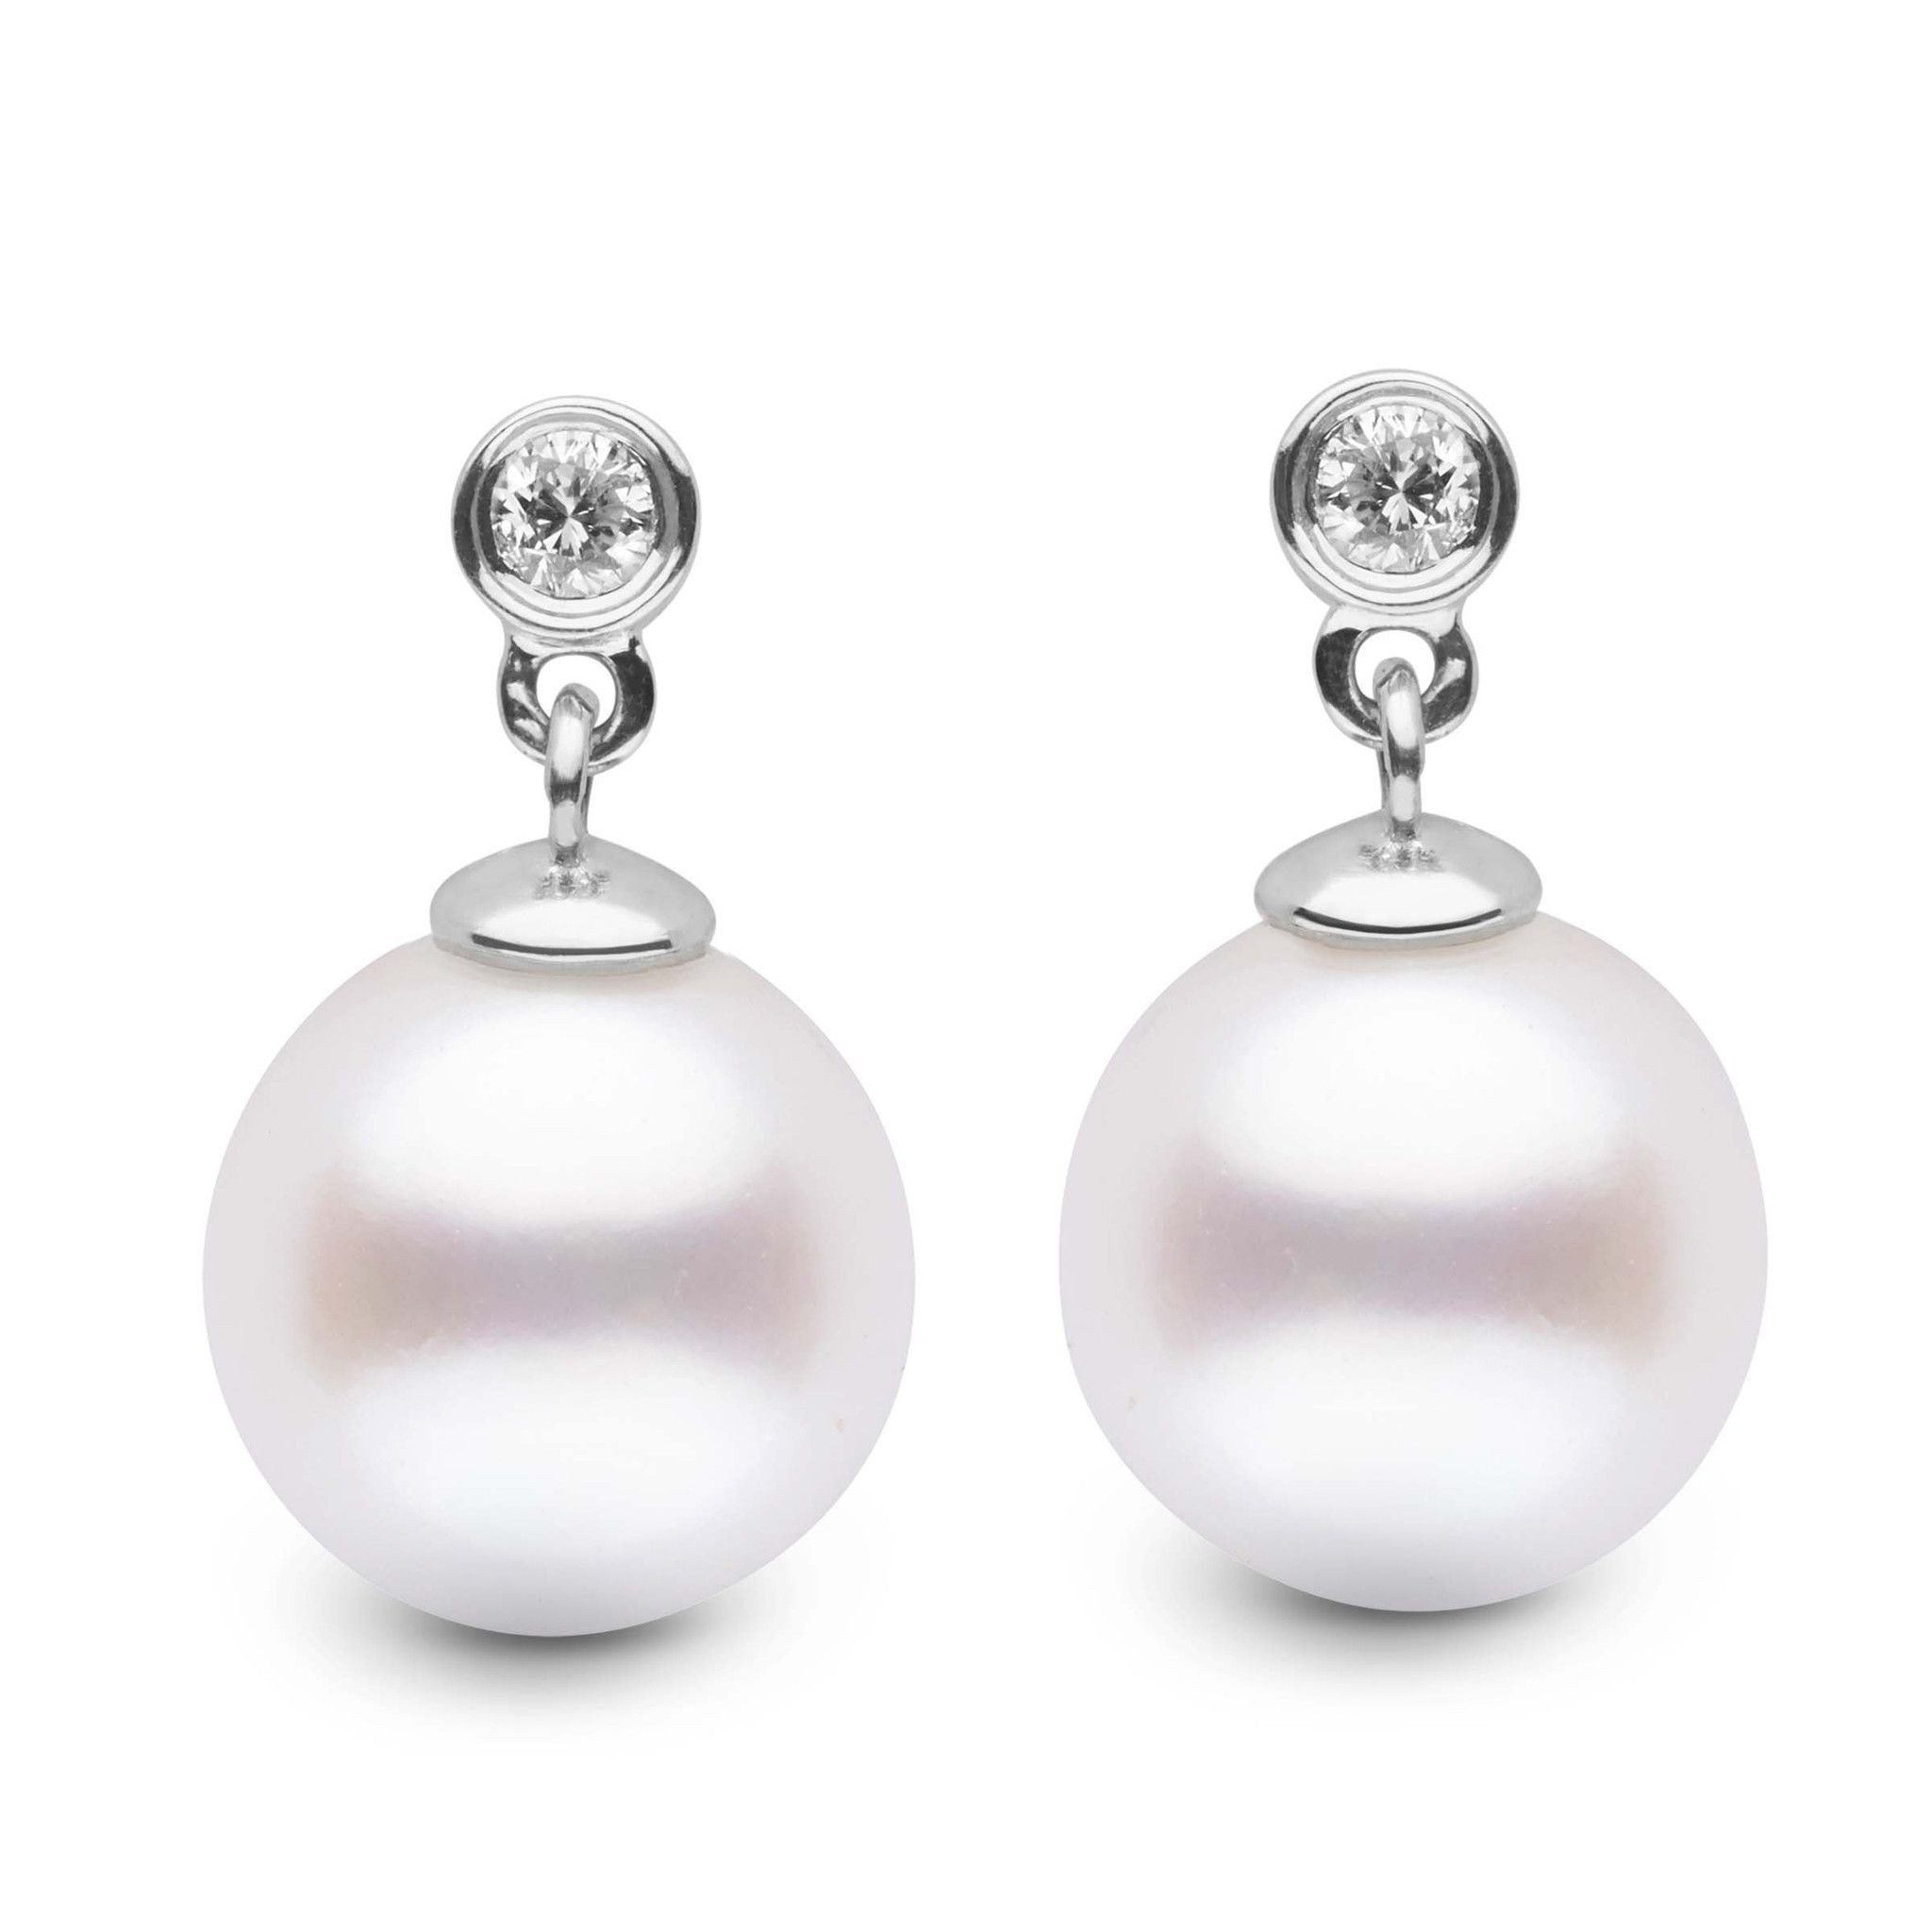 Brilliant Collection White Freshadama 9.0-10.0 mm Pearl & Diamond Earrings